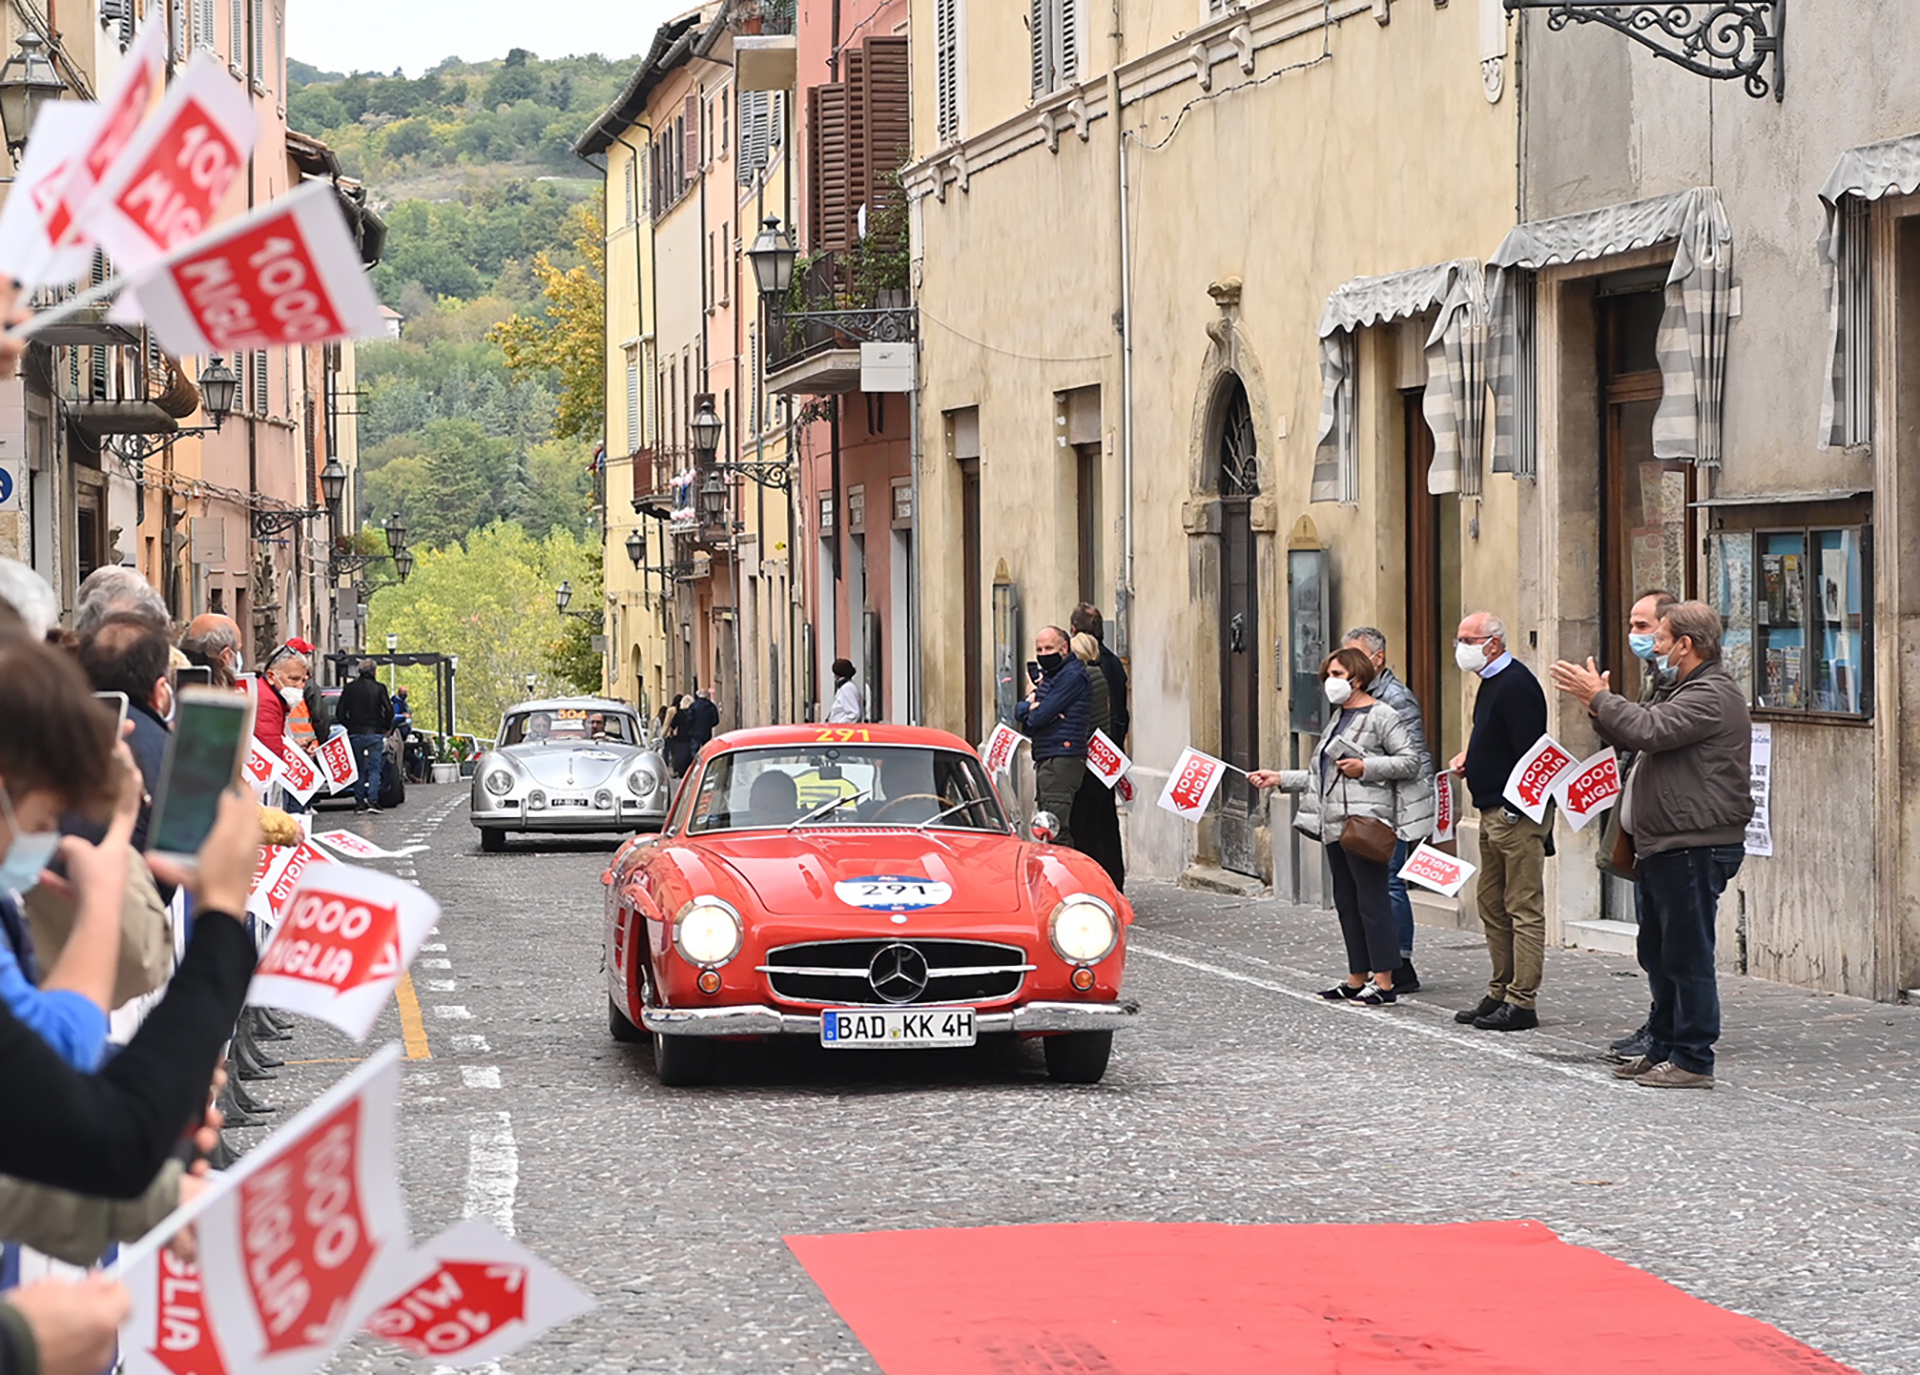 The 1000 Miglia crosses a thousand Italian villages over four days of competitive driving. In each of them, love and a warm welcome